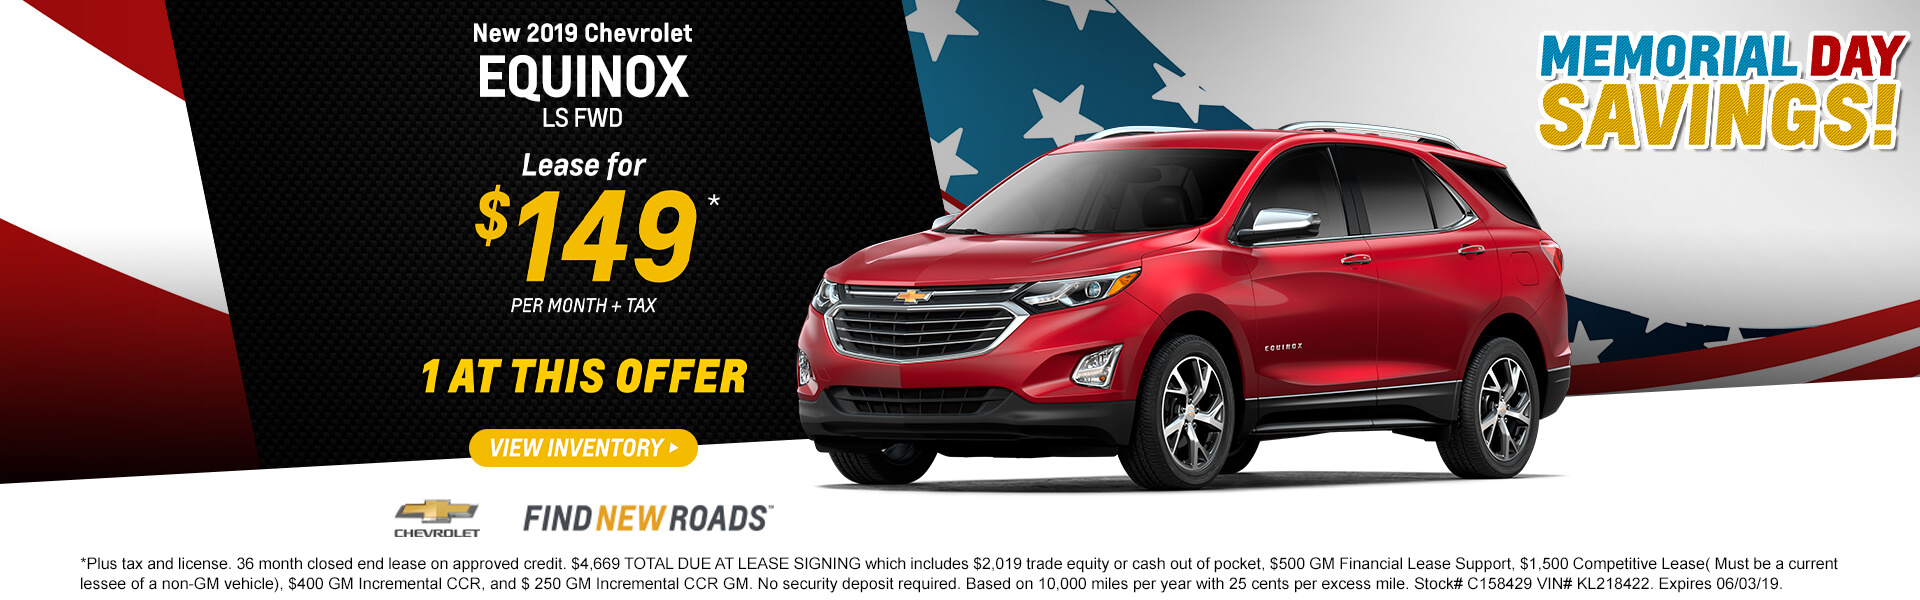 2019 CHEVROLET EQUINOX LS FWD  Lease for $149* + tax per month  1 AT THIS OFFER  *Plus tax and license. 36 month closed end lease on approved credit. $4,669 TOTAL DUE AT LEASE SIGNING which includes $2,019 trade equity or cash out of pocket, $500 GM Financial Lease Support, $1,500 Competitive Lease( Must be a current lessee of a non-GM vehicle), $400 GM Incremental CCR, and $ 250 GM Incremental CCR GM. No security deposit required. Based on 10,000 miles per year with 25 cents per excess mile. Stock# C158429 VIN# KL218422. Expires 06/03/19.